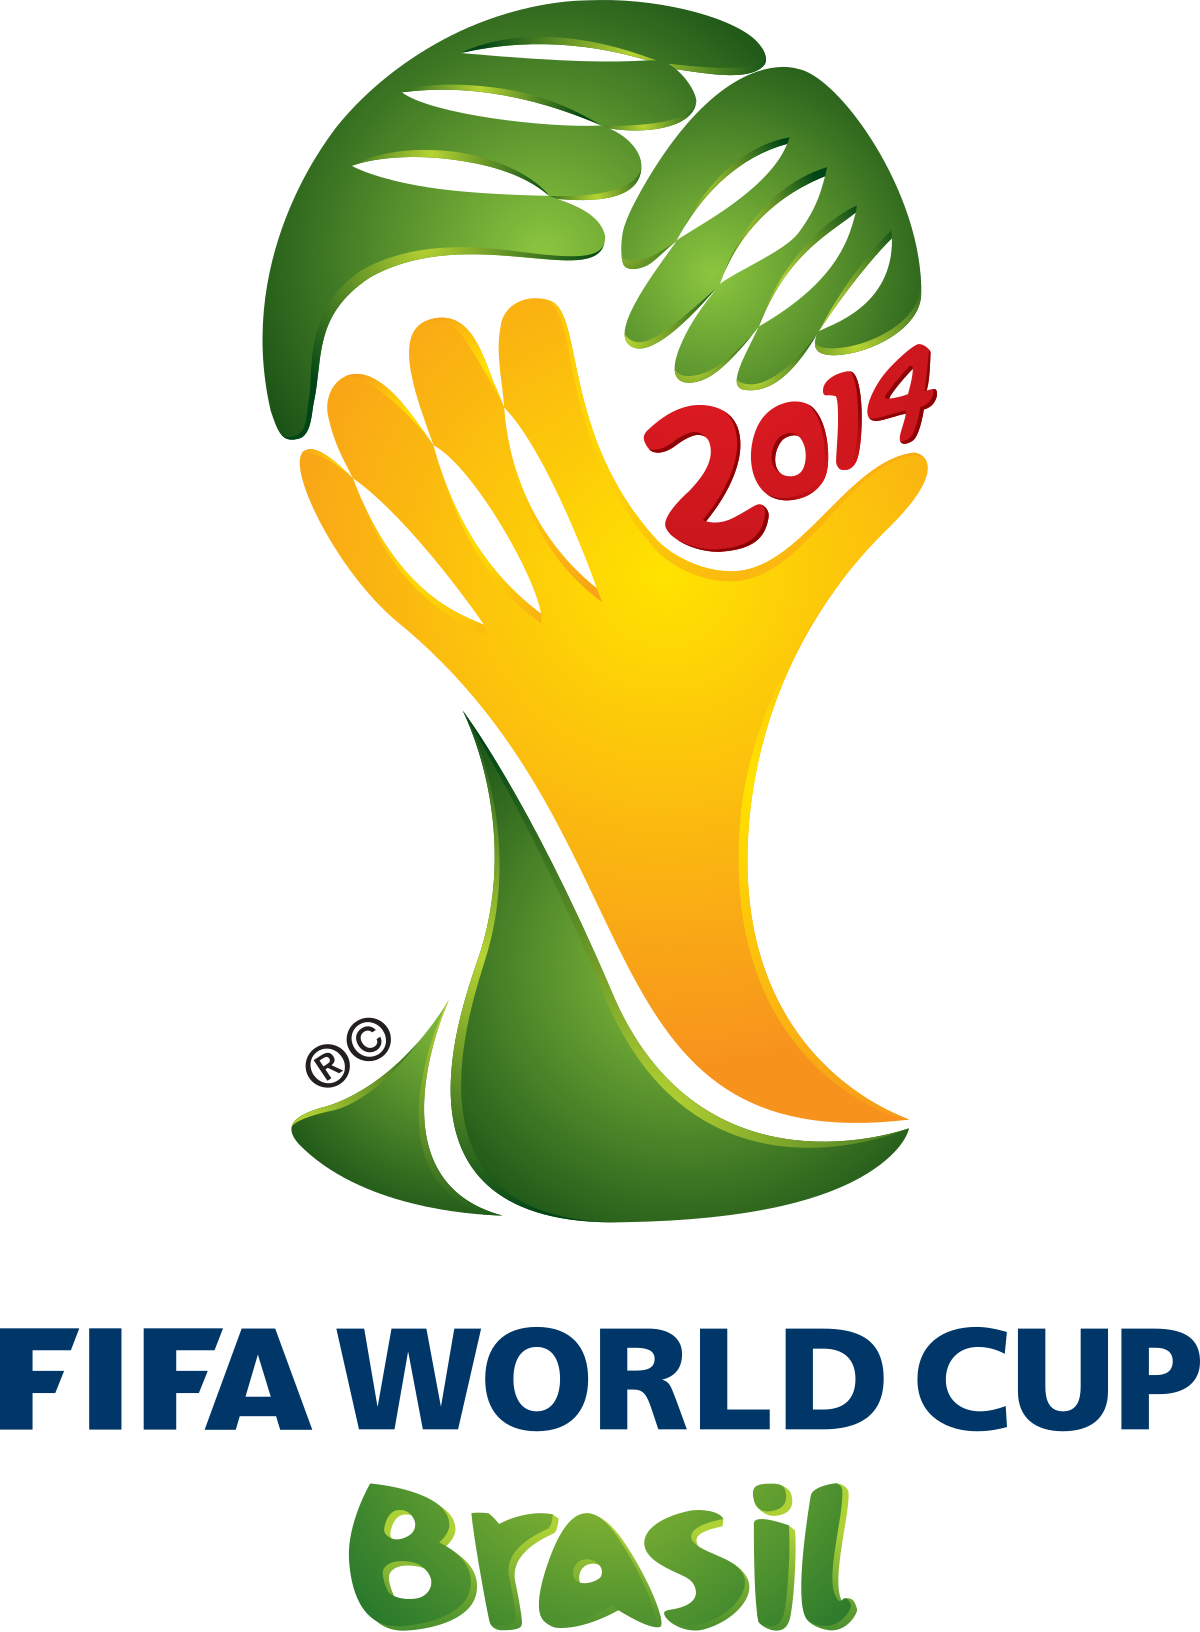 brazil drawing world cup trophy 2014